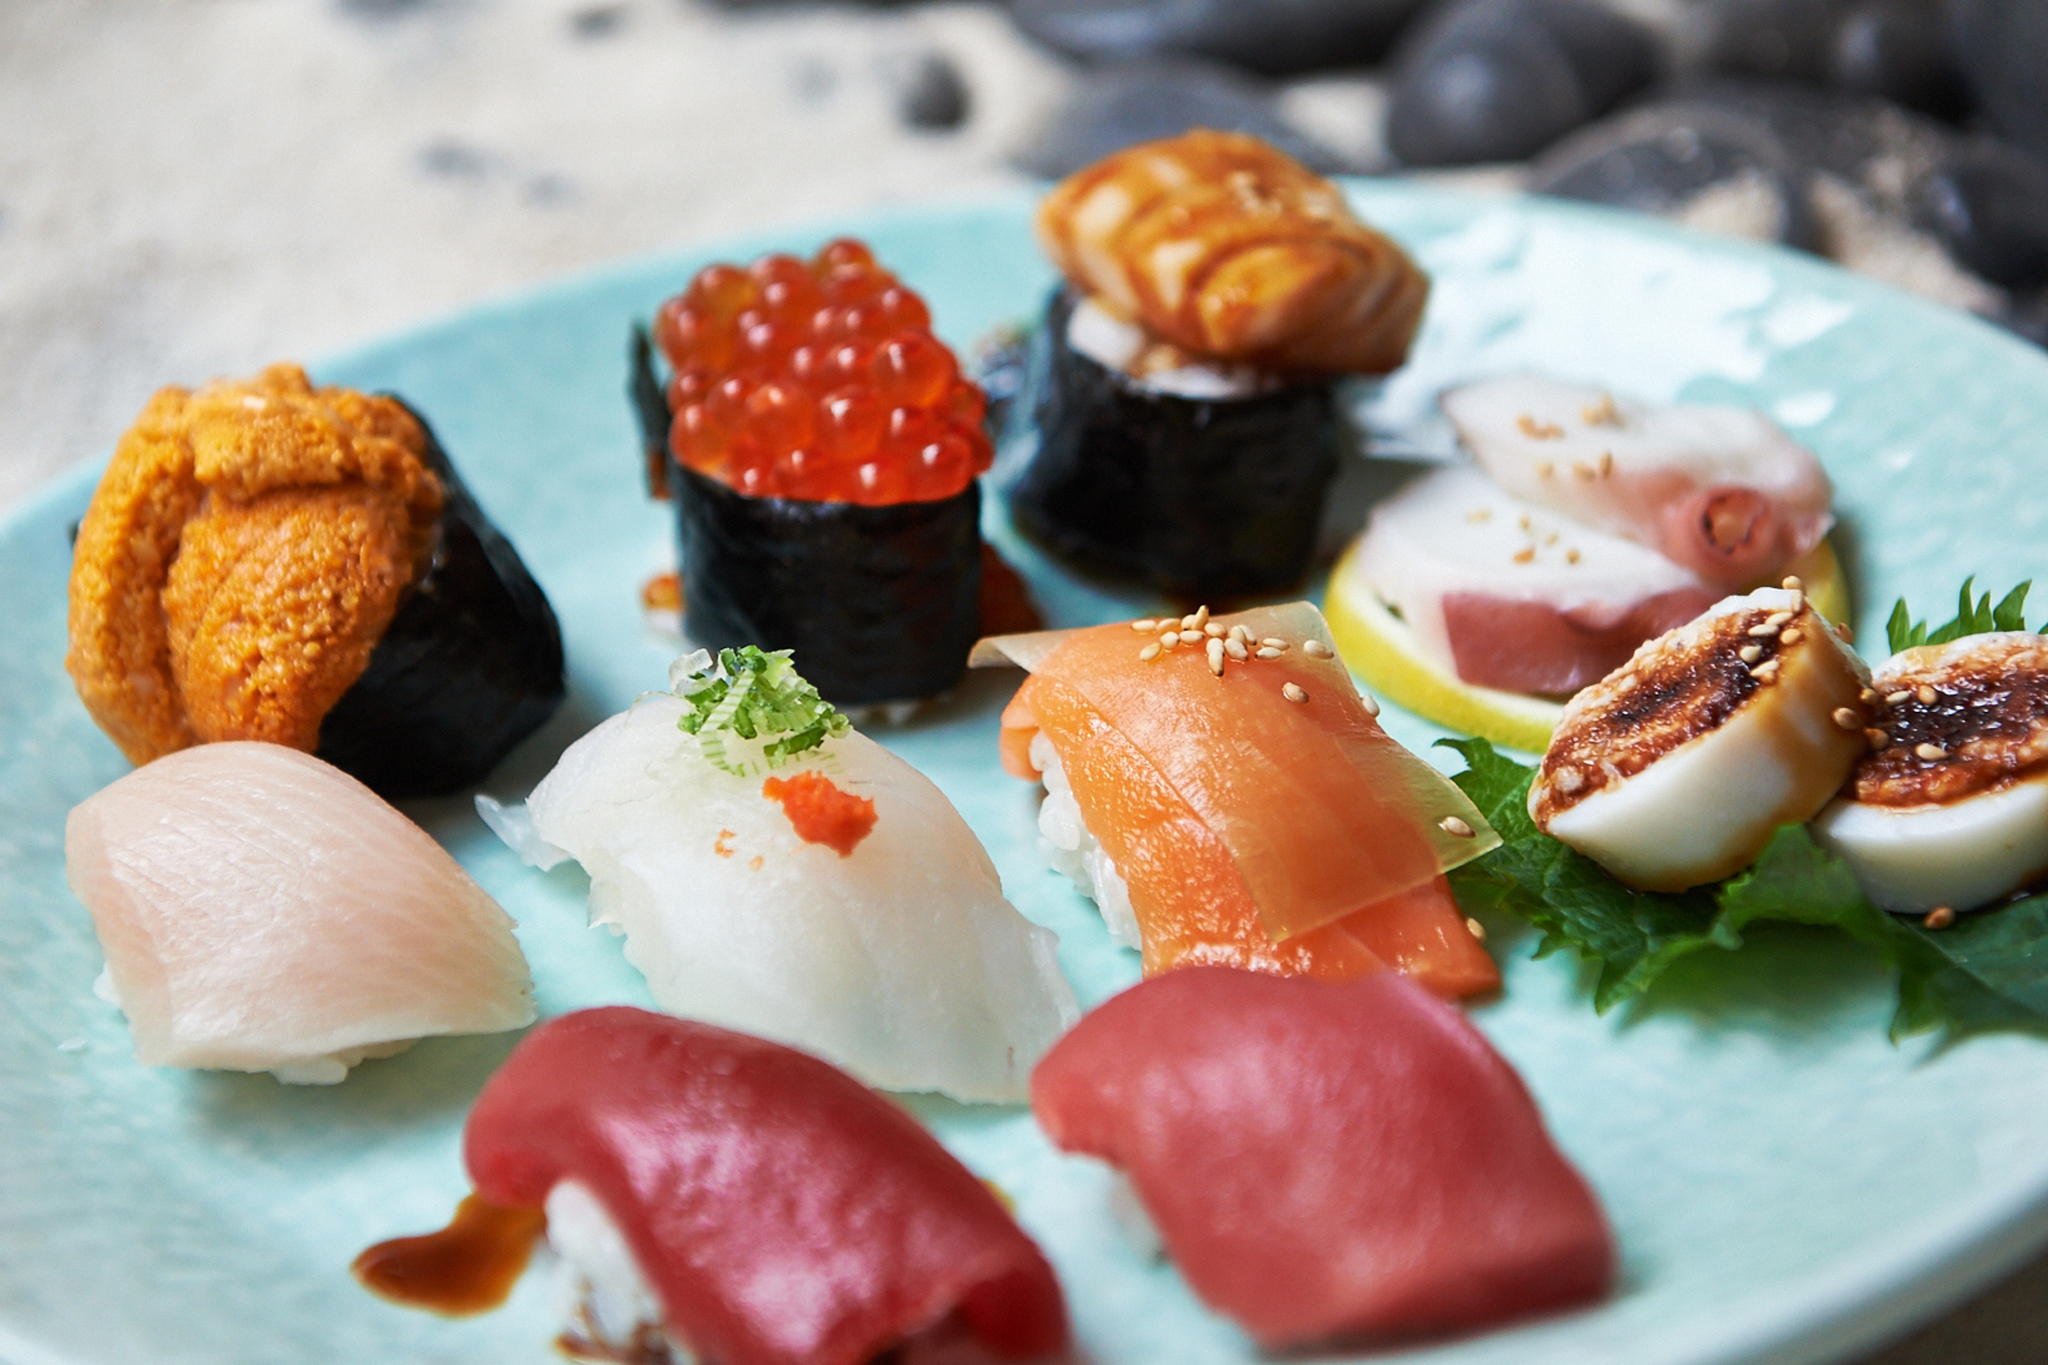 Places Sushi And Other Food